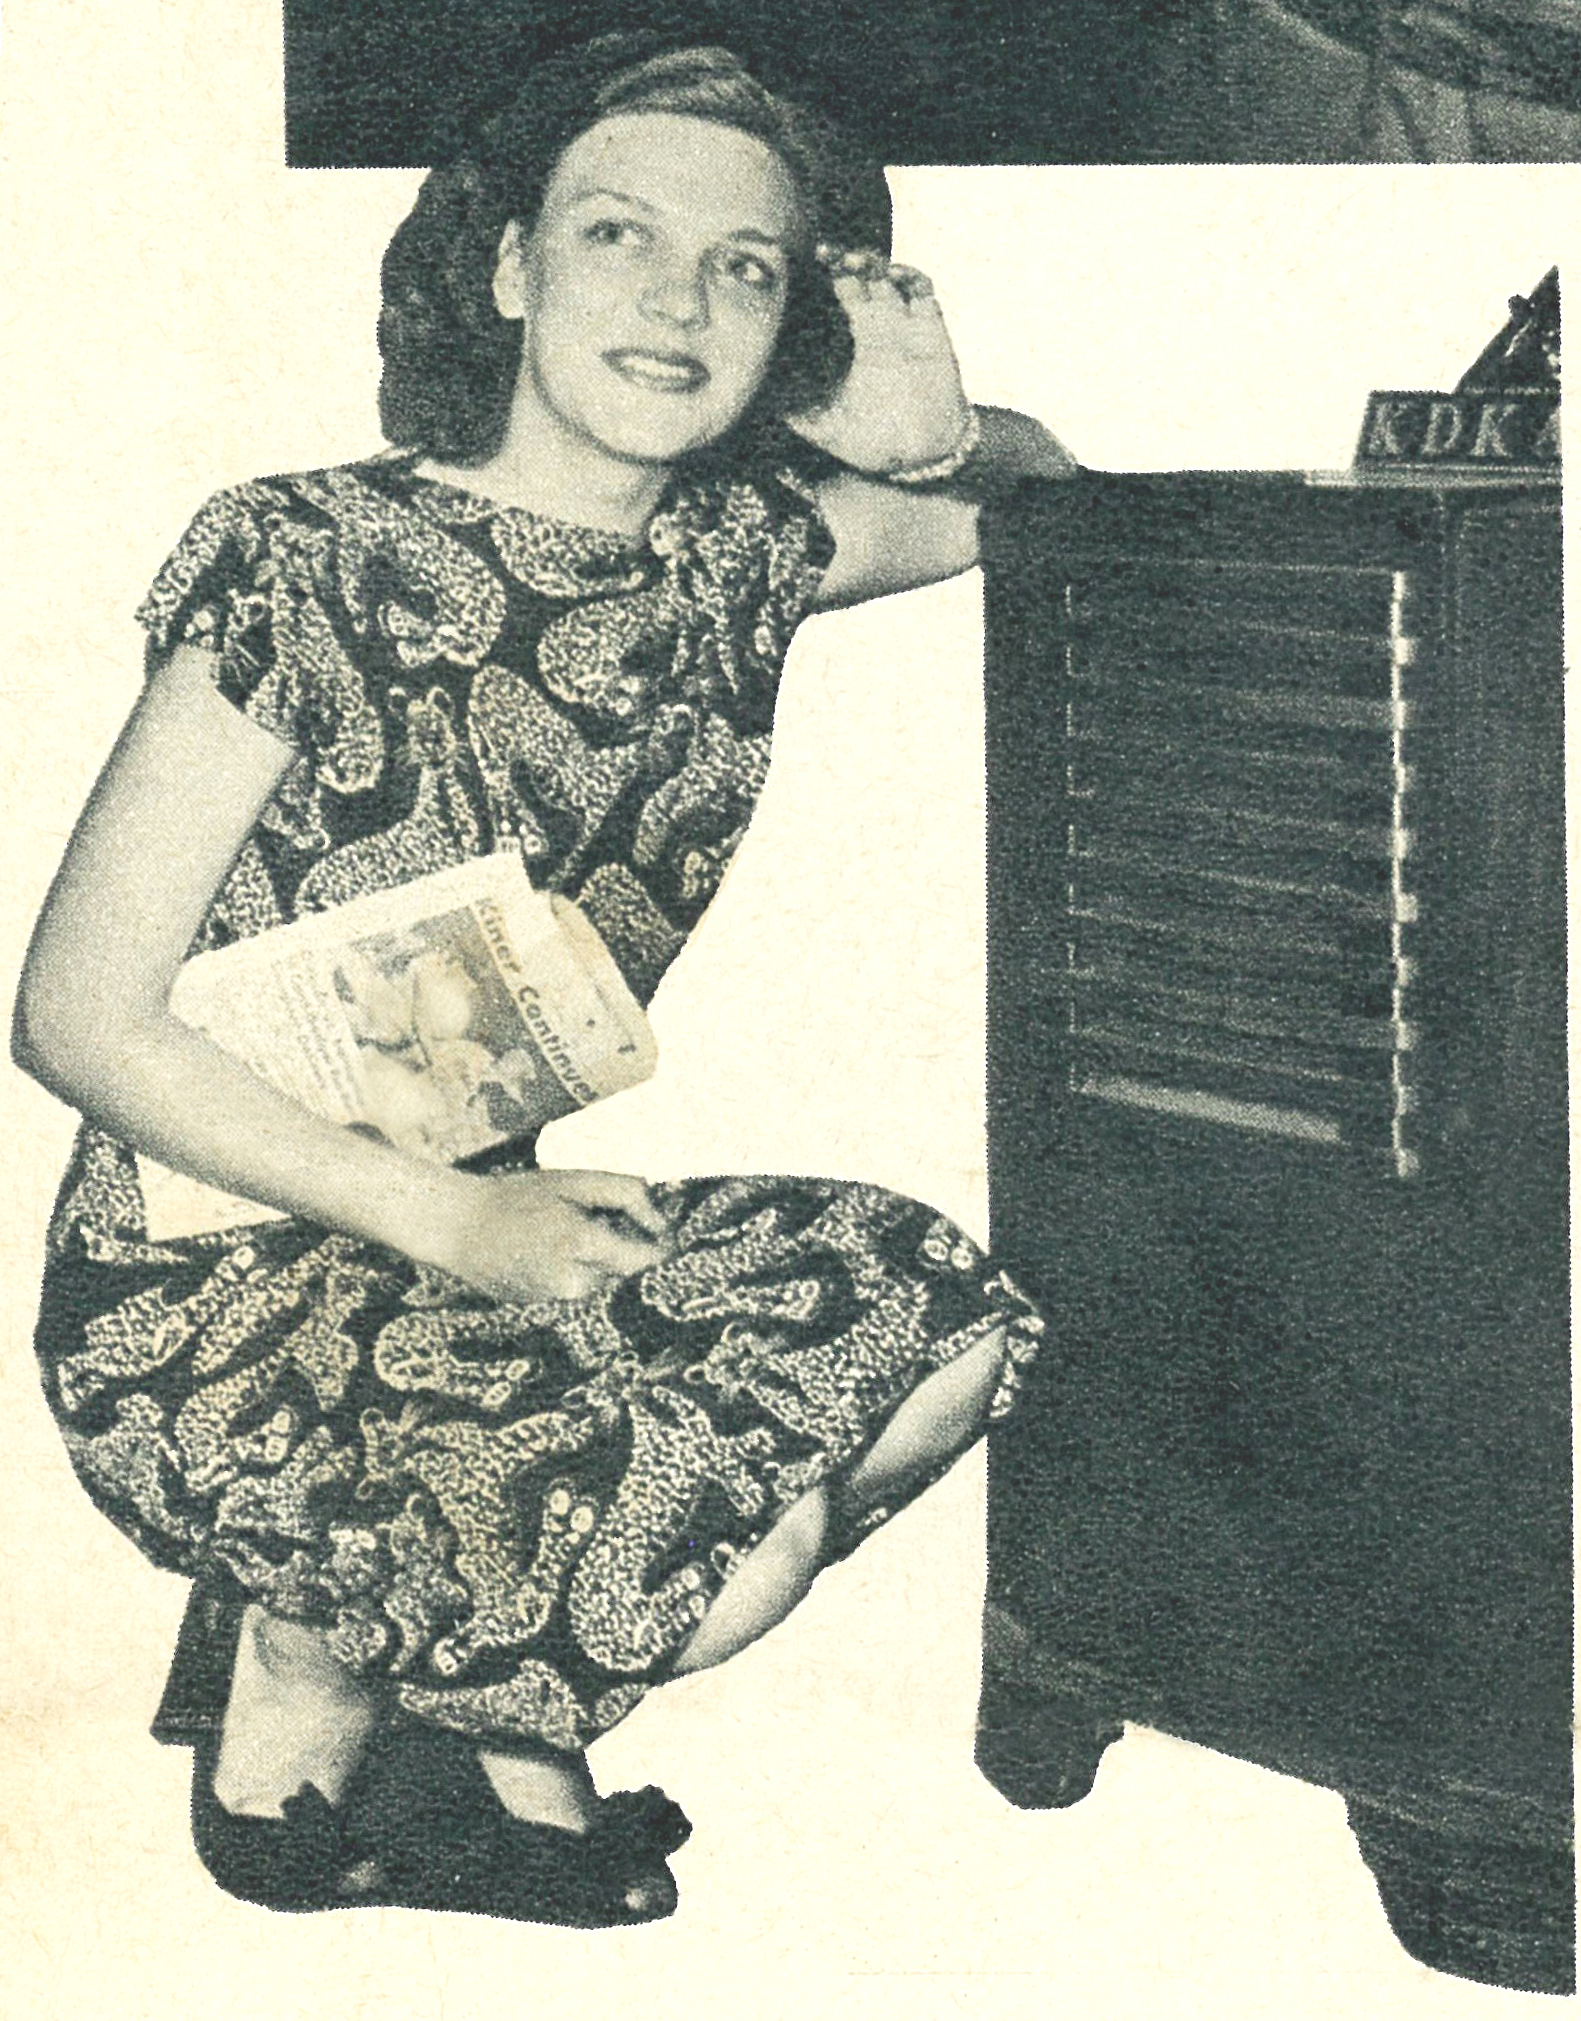 BLO-Kneeling next to radio with sports section.jpg